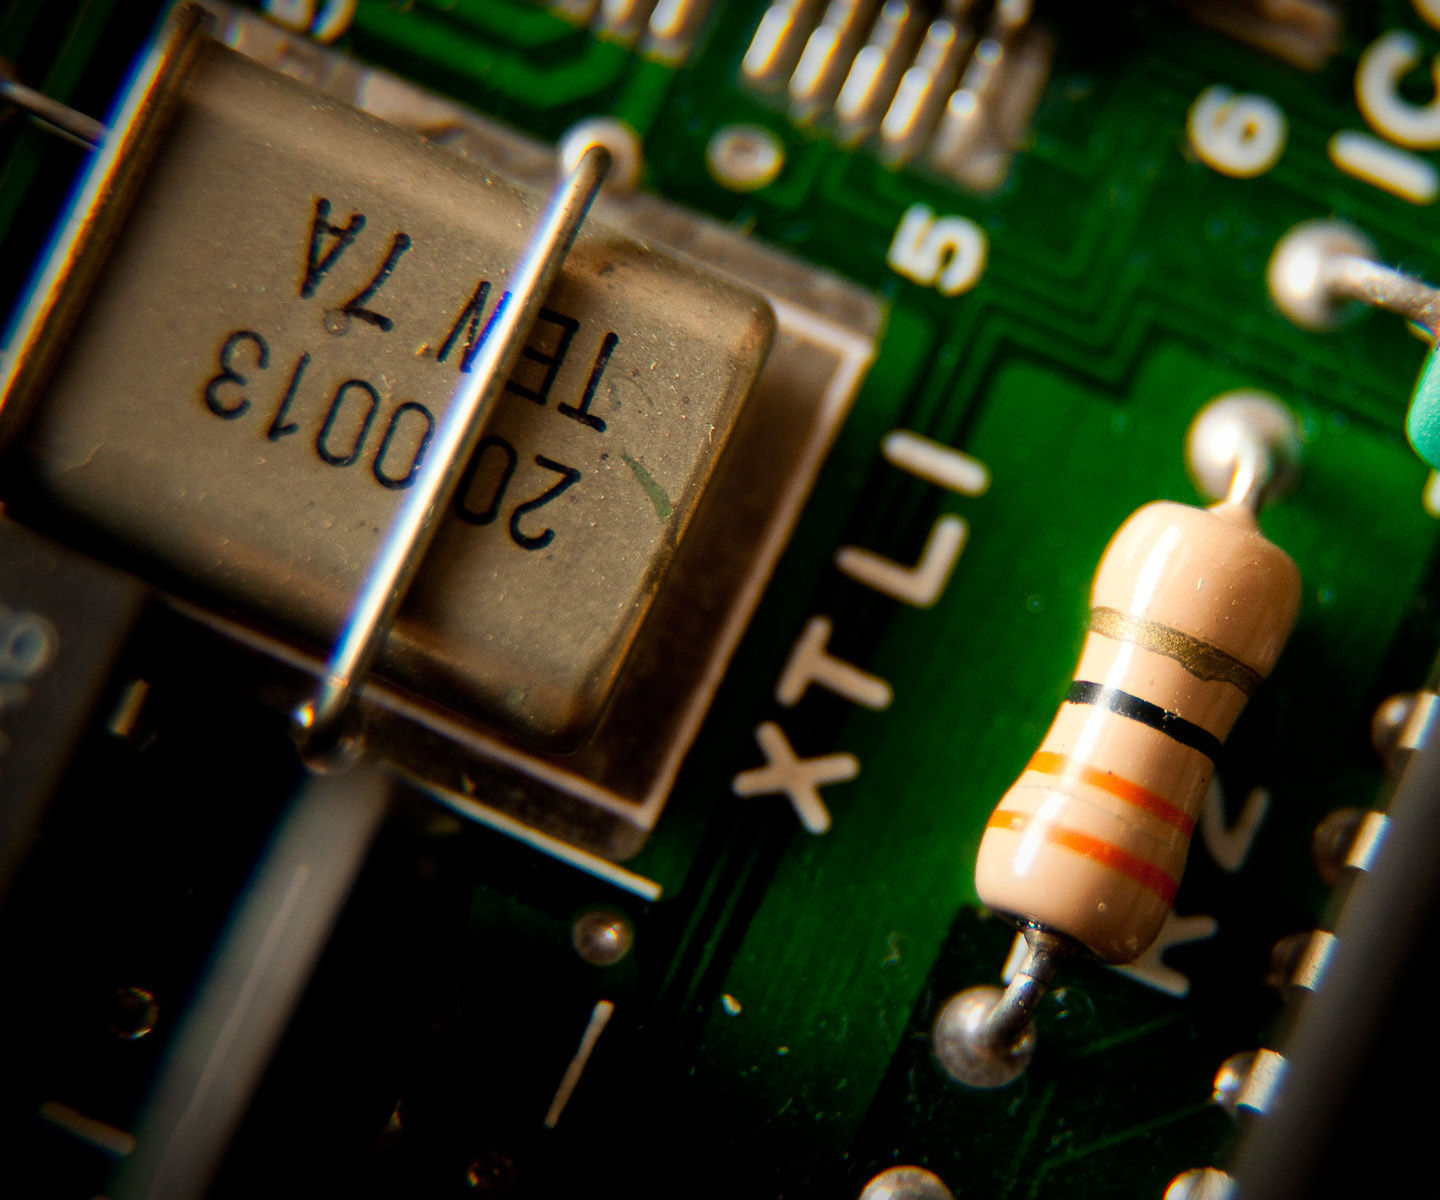 Hey Beginners - flashing led with an IC 555 for dummies.. basics of electronics